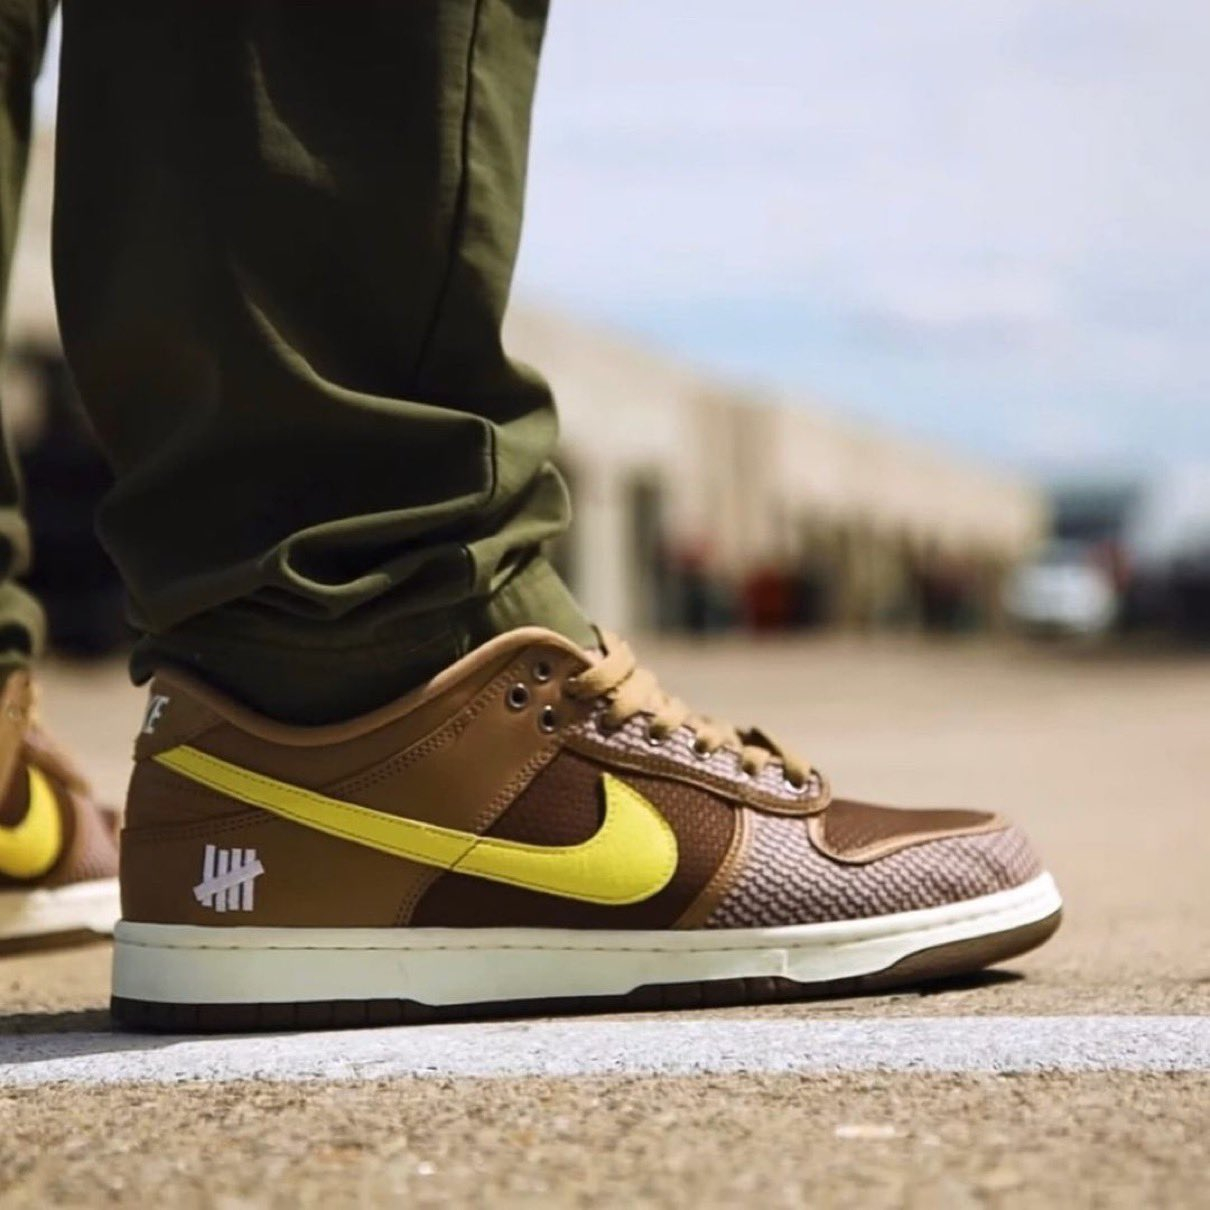 Image of Nike SB Dunk Low Canteen Men's and Women's Sneakers Shoes